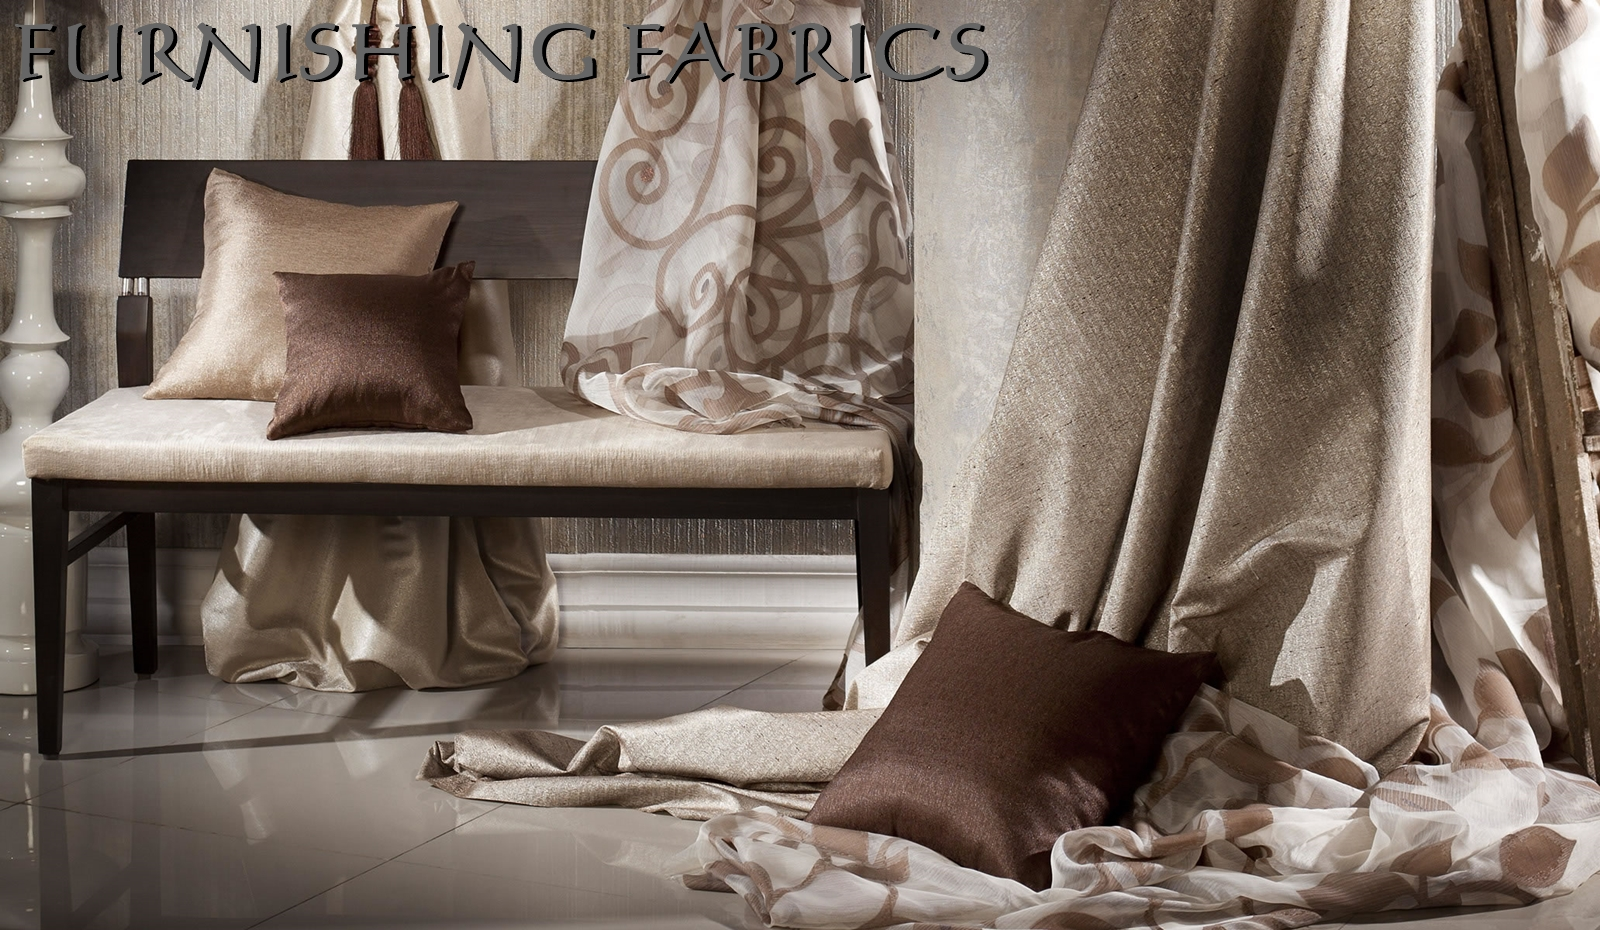 Furnishing Fabrics Is What Defines You These Soft Furnishings Define Your Mood Your Attitude Your Lifestyle And Your Persona As A Whole